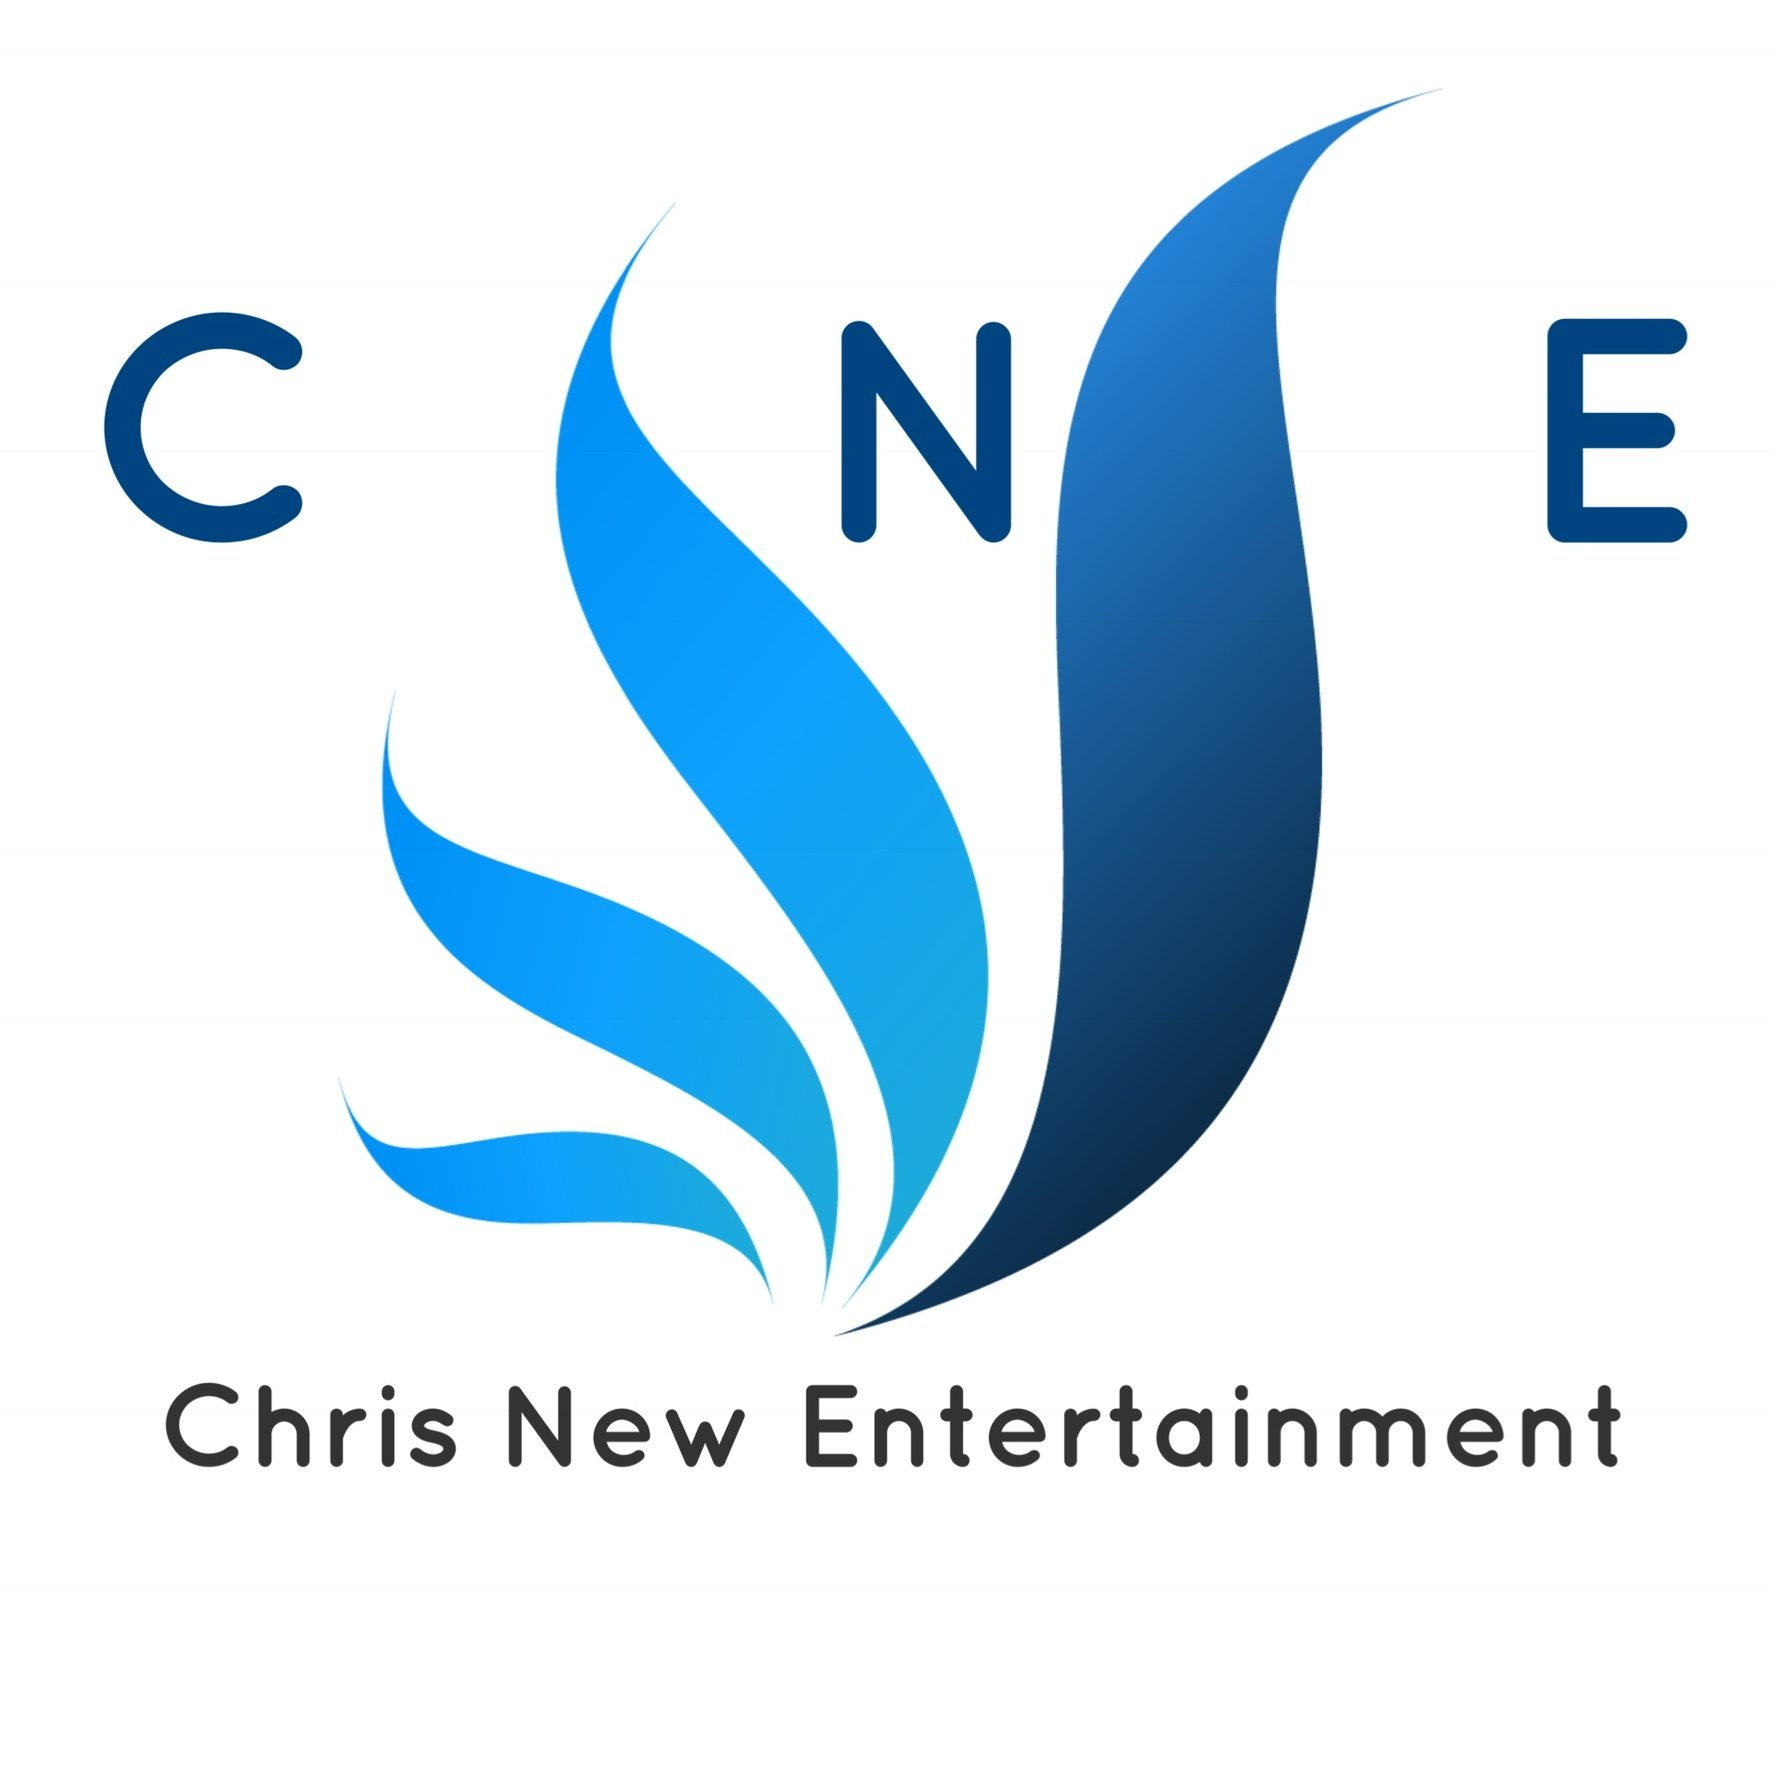 Chris New Entertainment